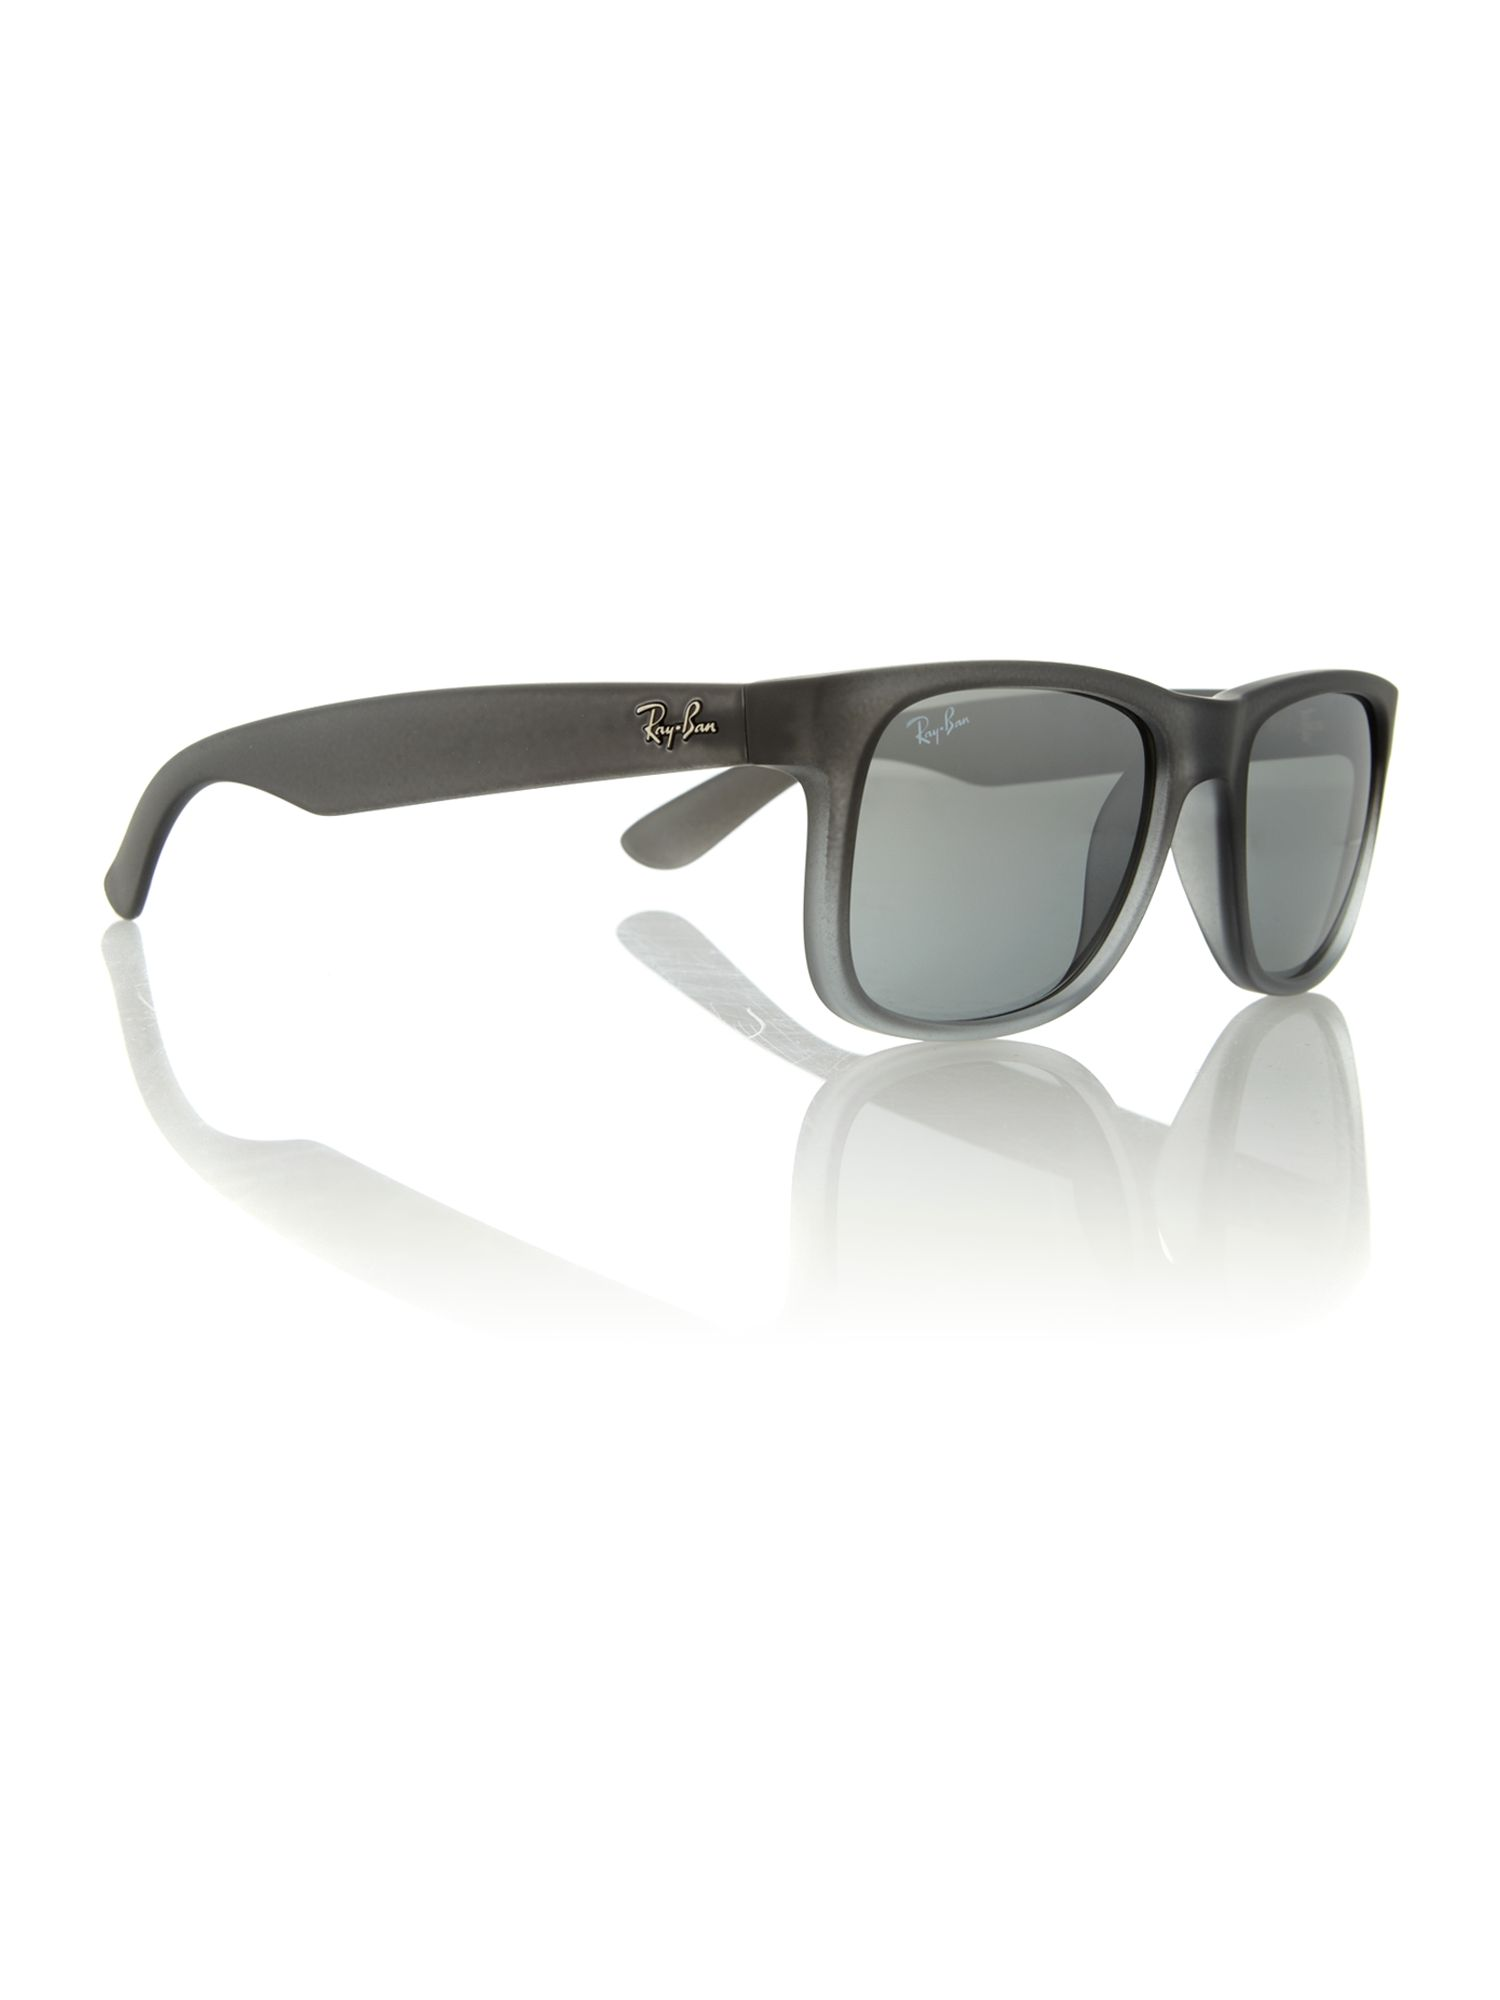 Unisex RB4165 grey justin sunglasses